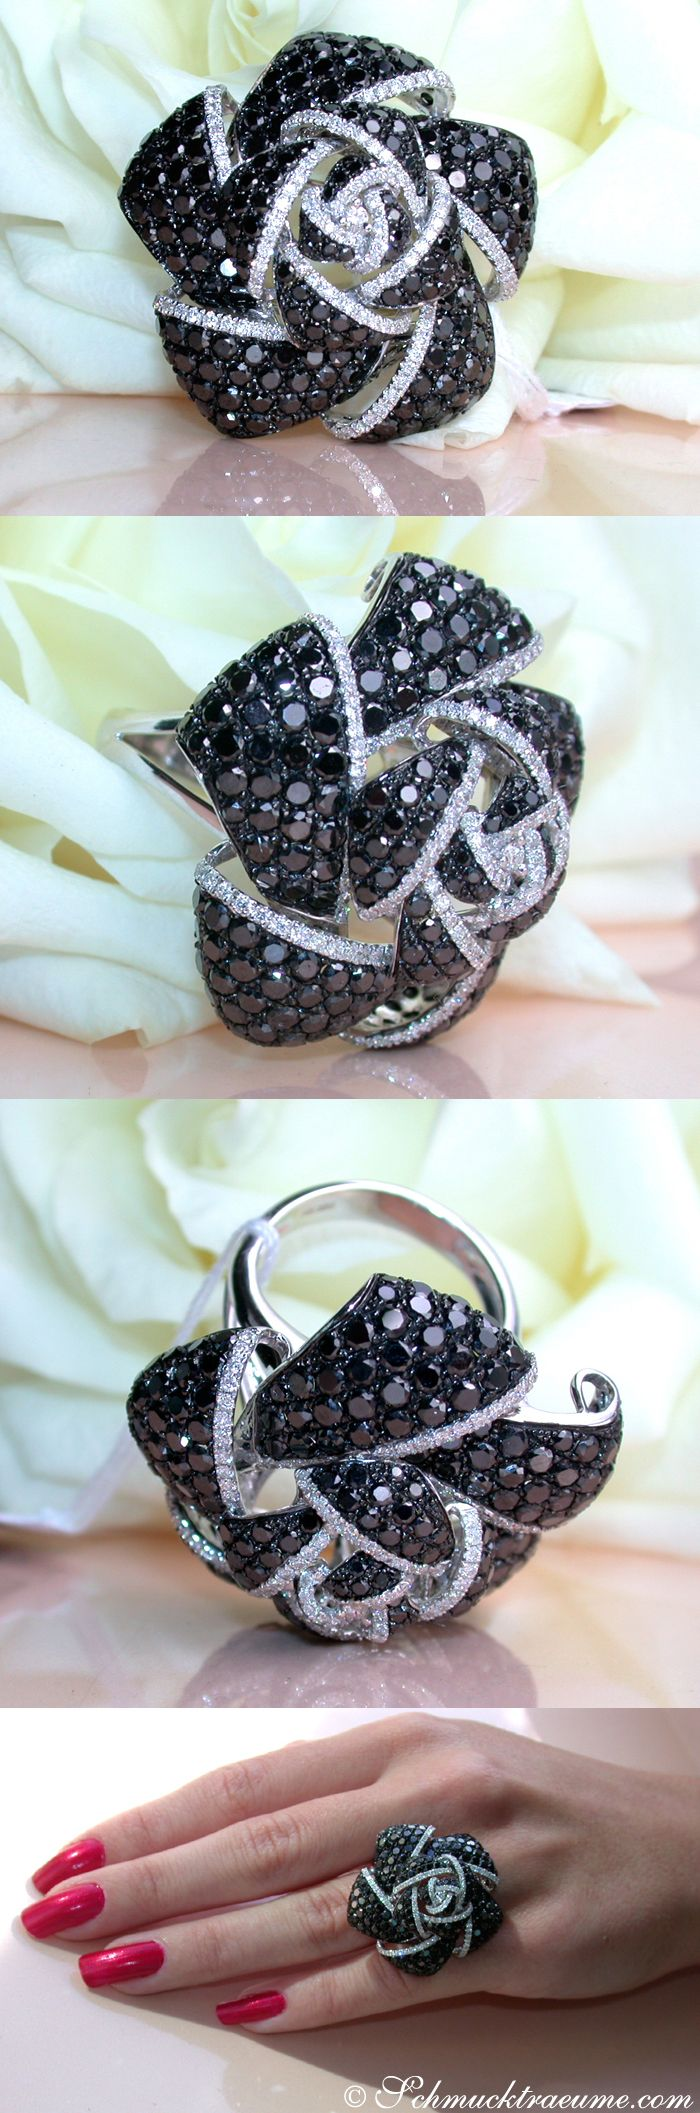 Extravagant: Black & White Diamond Rose Ring, 8,36 ct. WG14K - Visit: schmucktraeume.com Like: https://www.facebook.com/pages/Noble-Juwelen/150871984924926 Mail: info[at]schmucktraeume.com